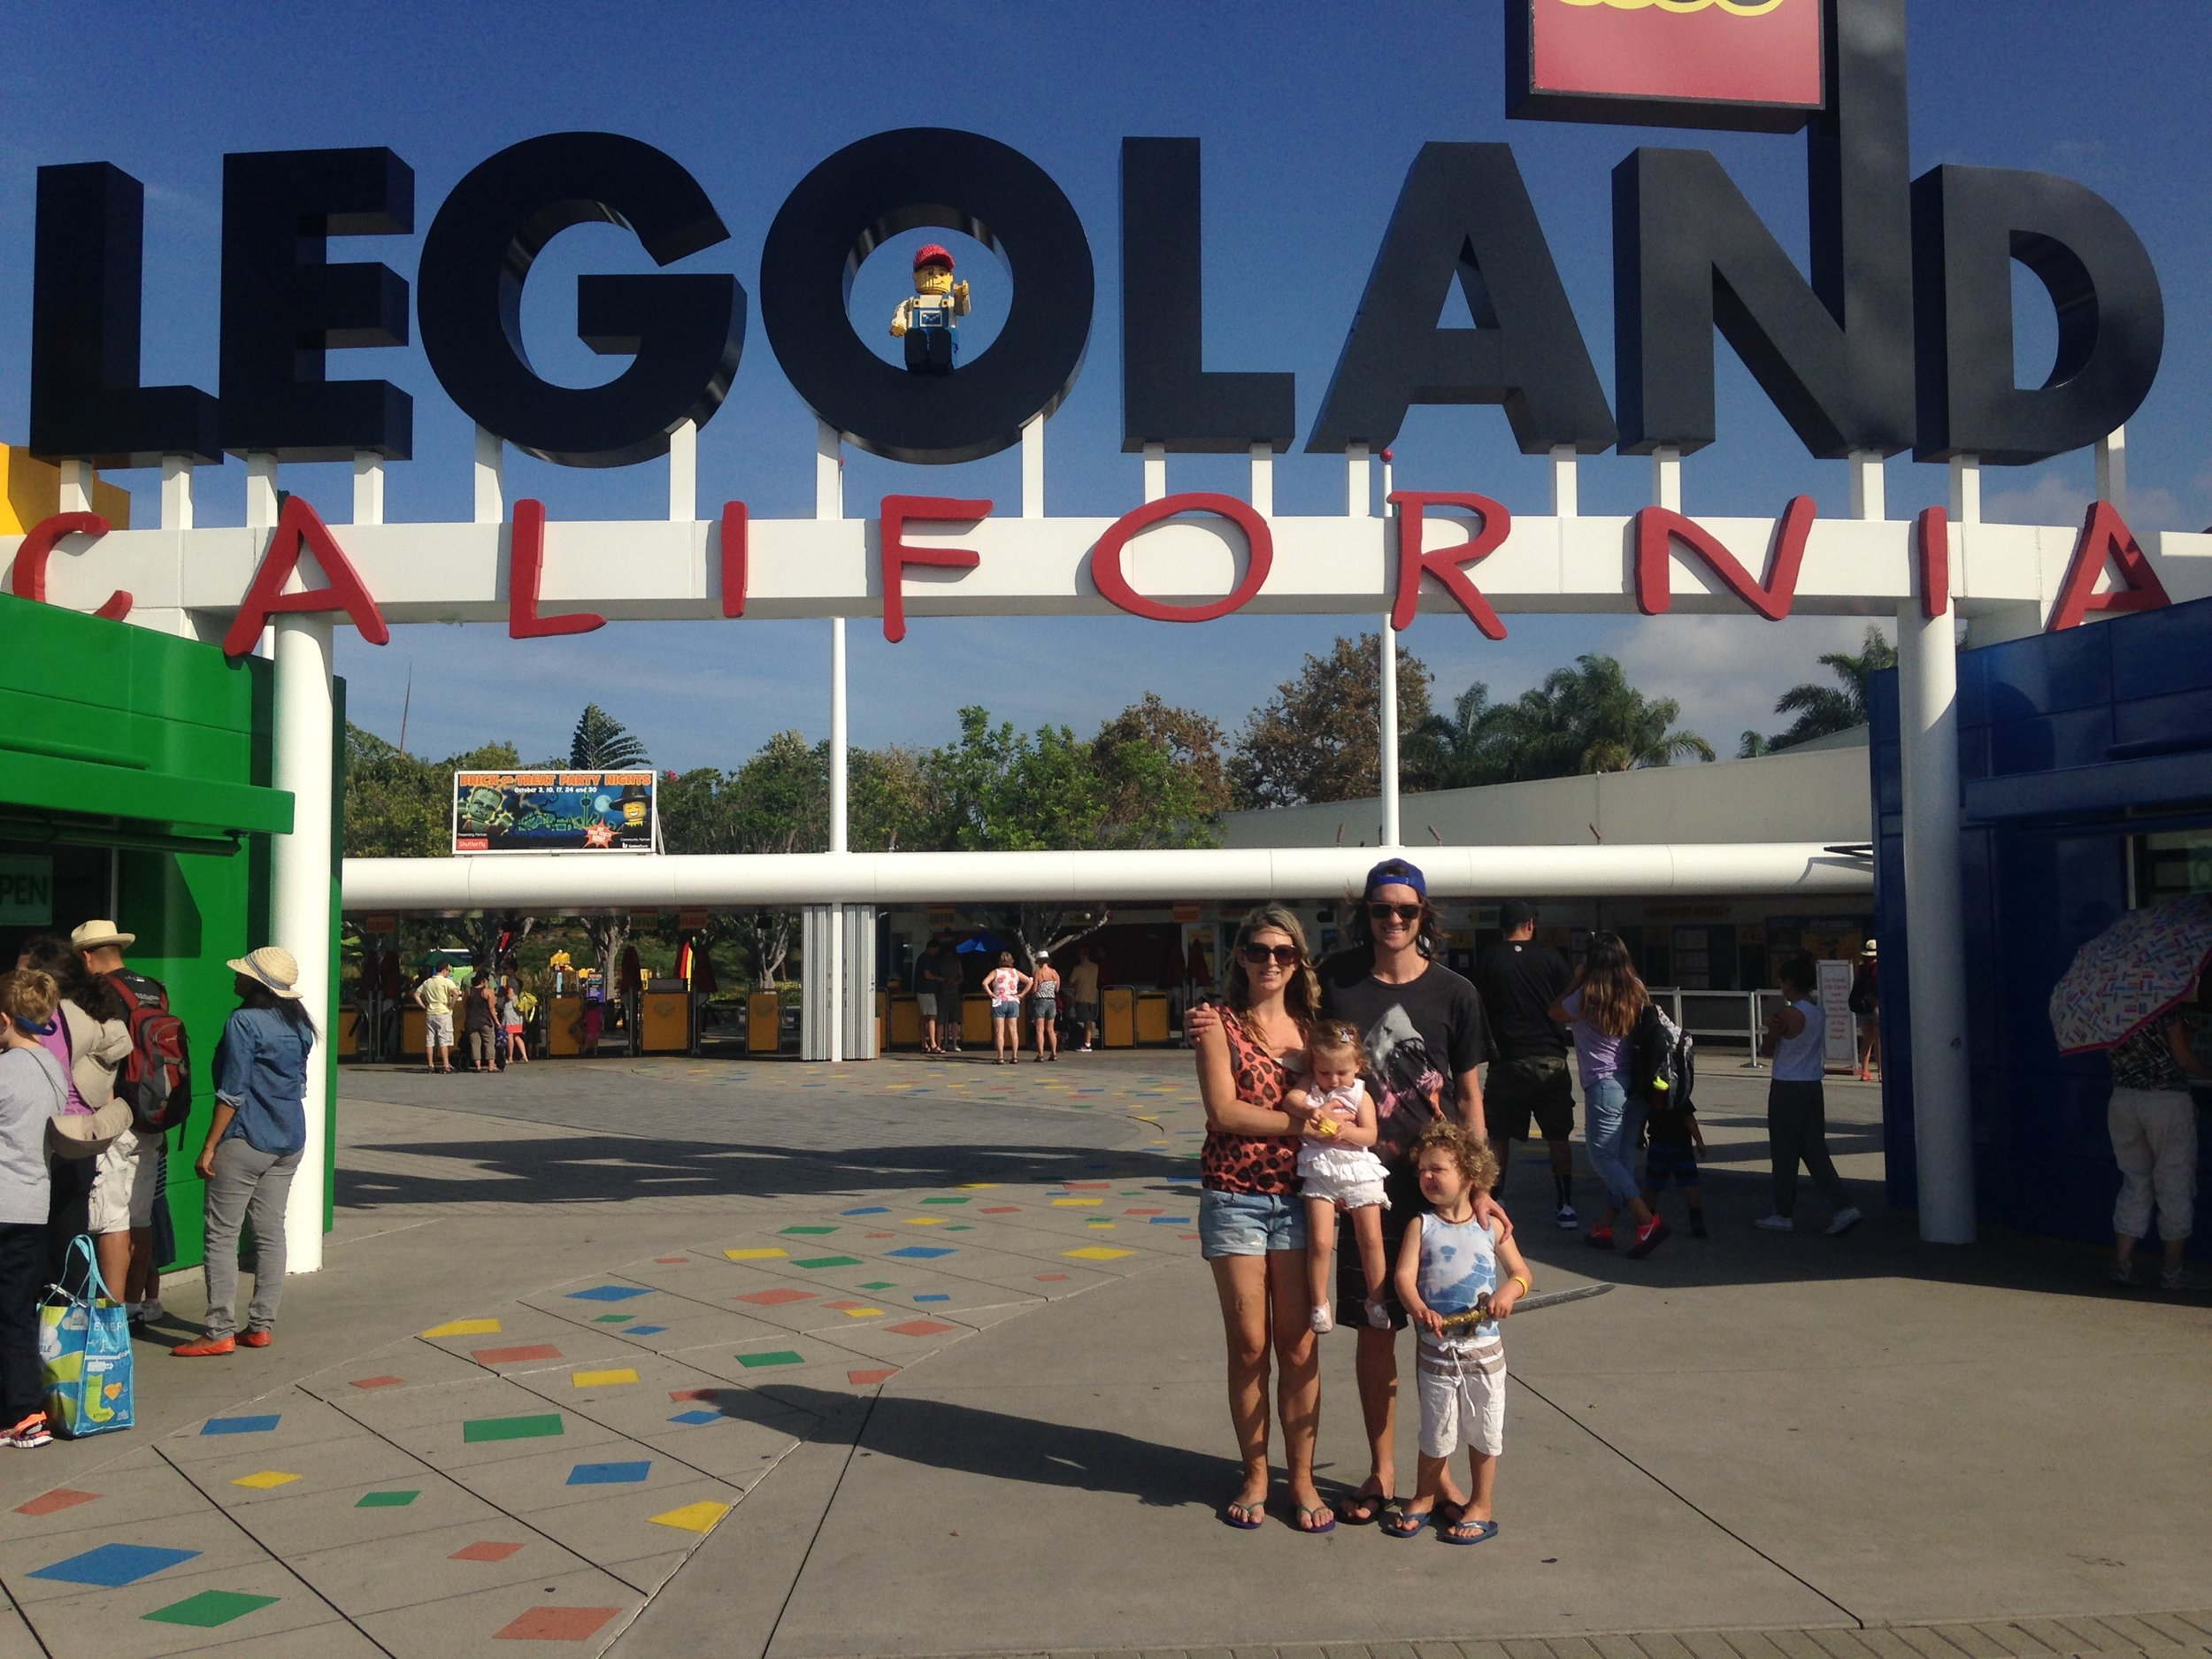 Legoland here we come!